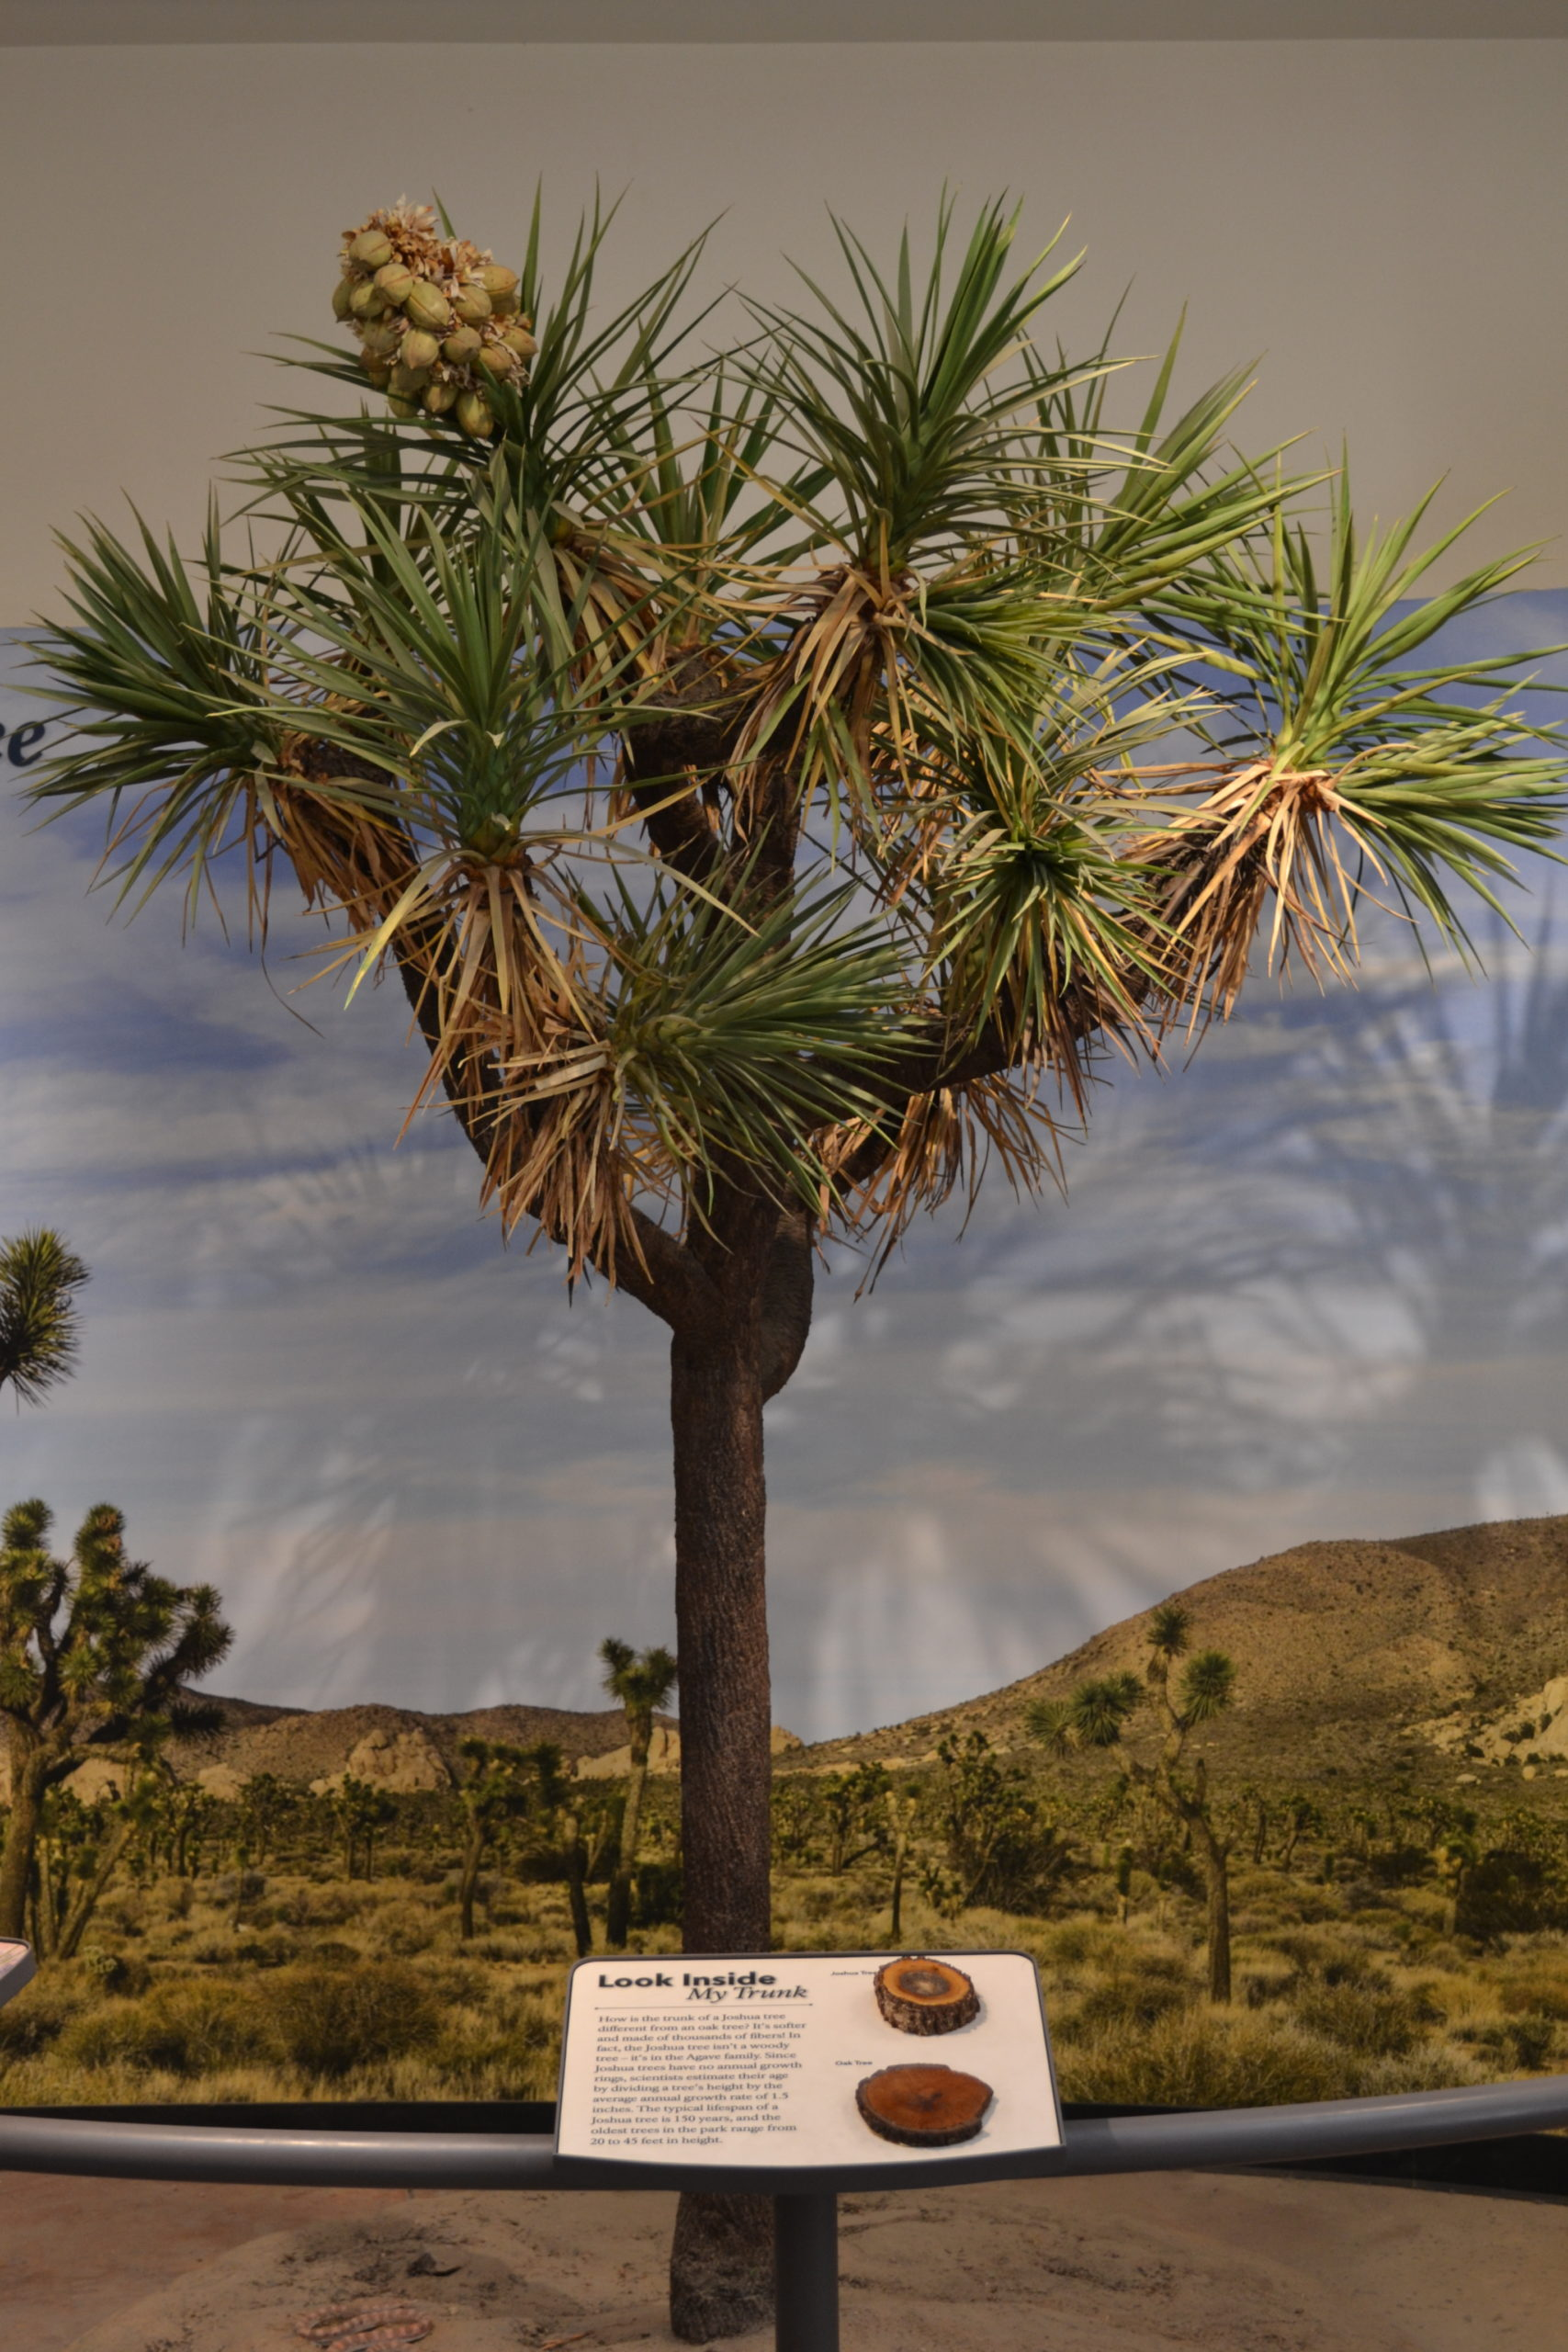 Joshua-Tree-National-Park-Visitor-Center-hiking-camping-tour-adventure-Age-Of-Tree-Exhibit